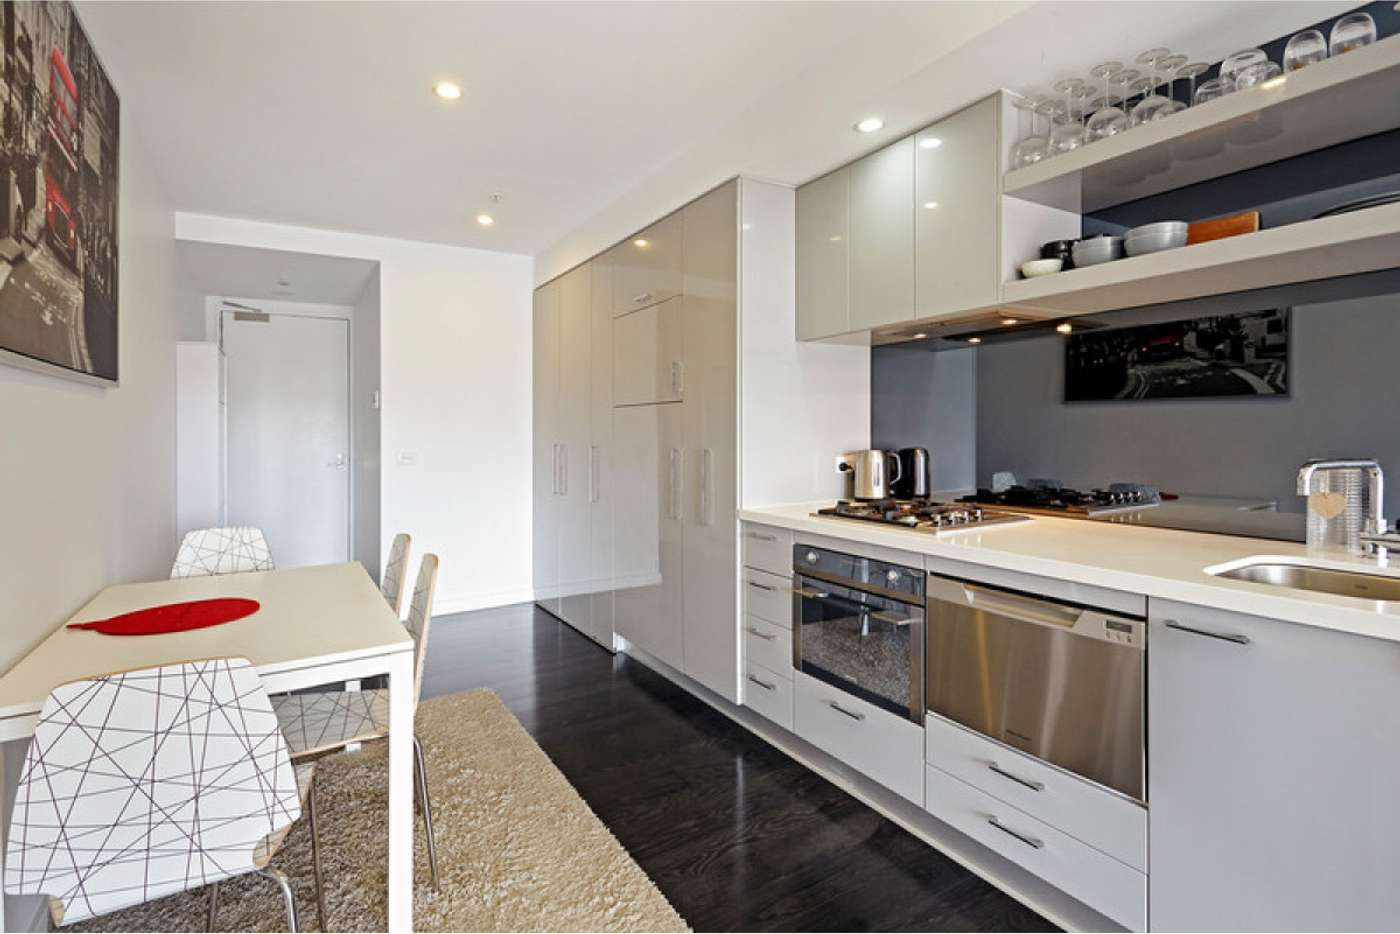 Main view of Homely apartment listing, 410/338 Kings Way, South Melbourne VIC 3205